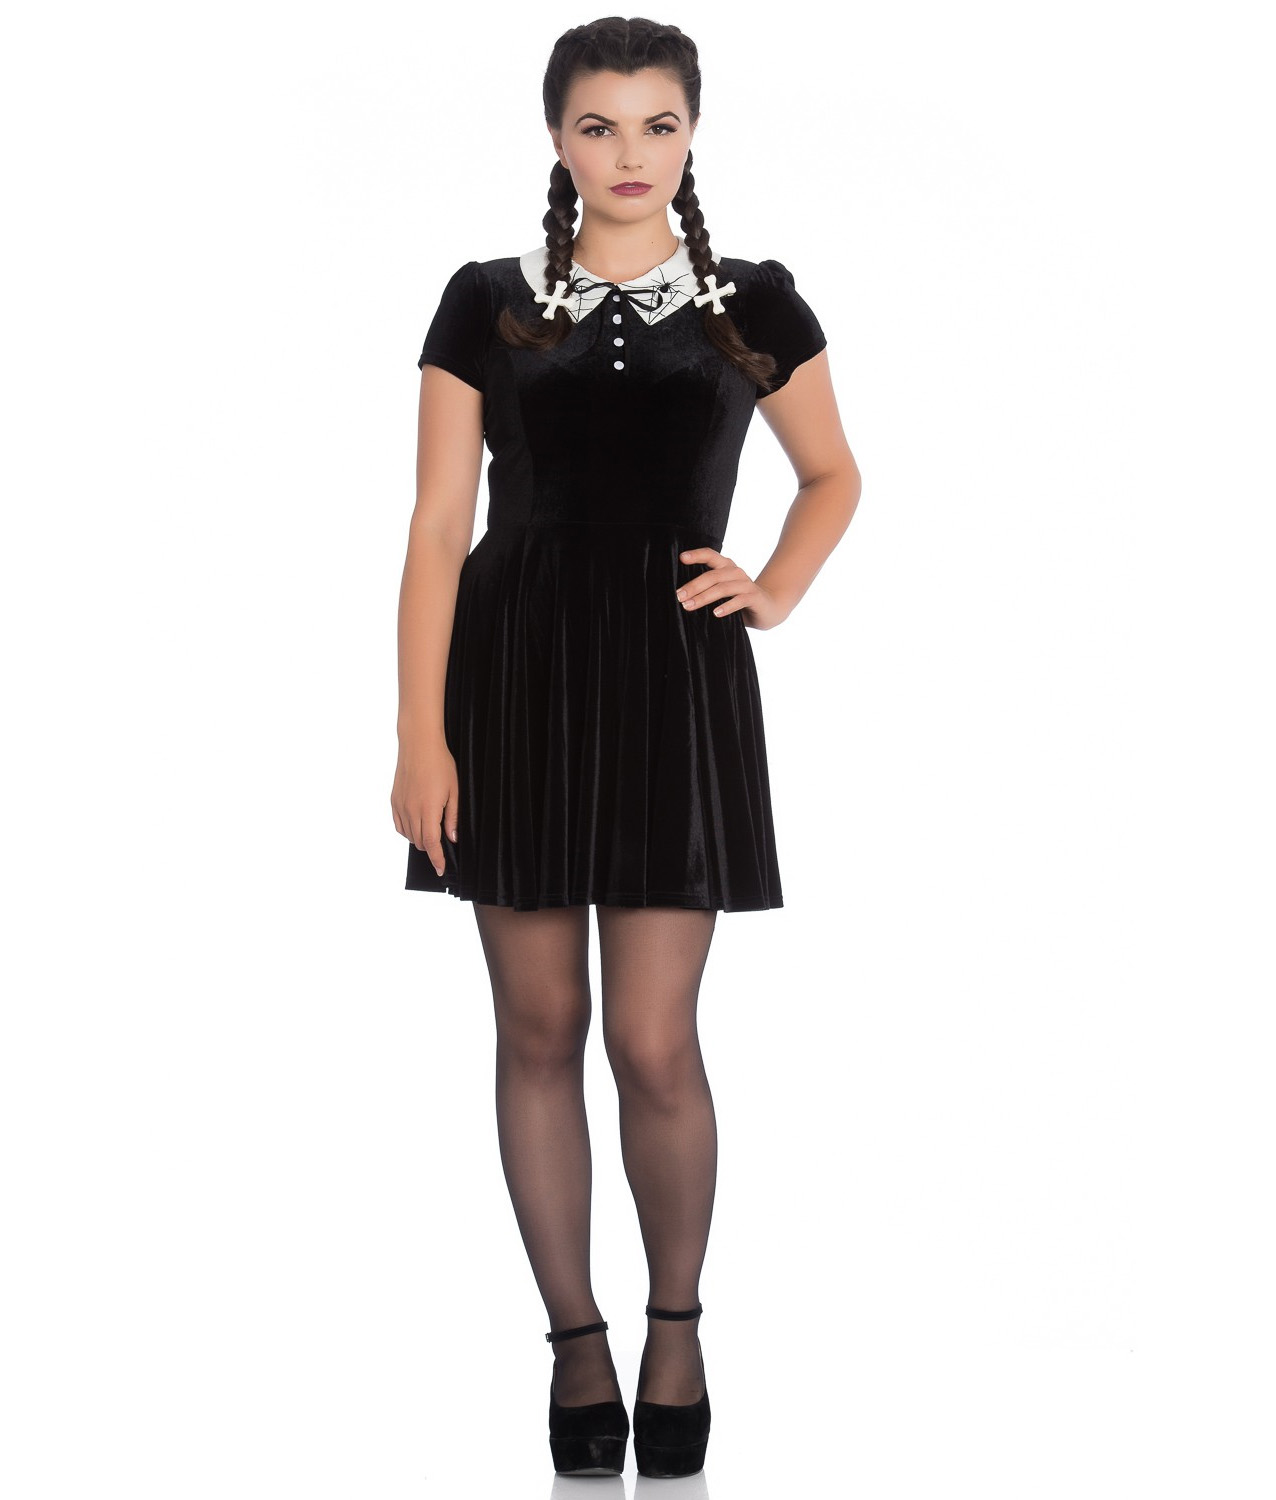 Hell-Bunny-Gothic-Mini-Skater-Dress-MISS-MUFFET-Spiders-Black-Velvet-All-Sizes thumbnail 3